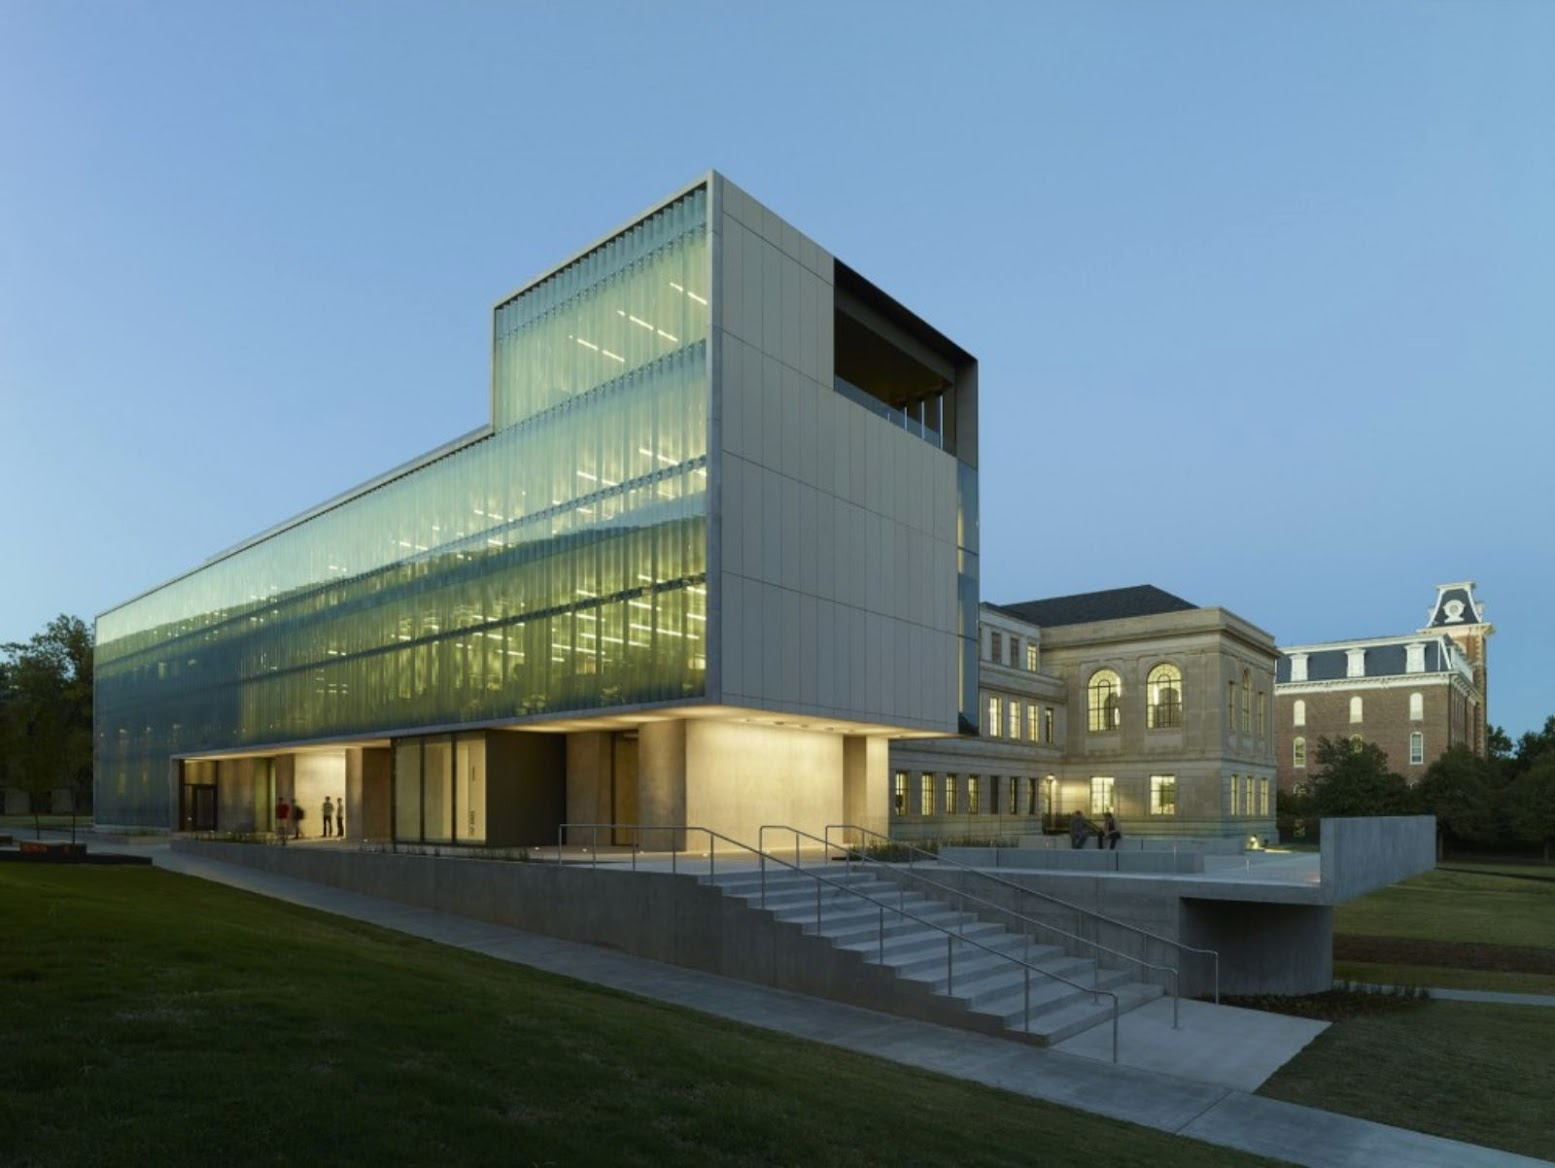 University of Arkansas, Fayetteville, AR 72701: [STEVEN L ANDERSON DESIGN CENTER BY MARLON BLACKWELL ARCHITECT]